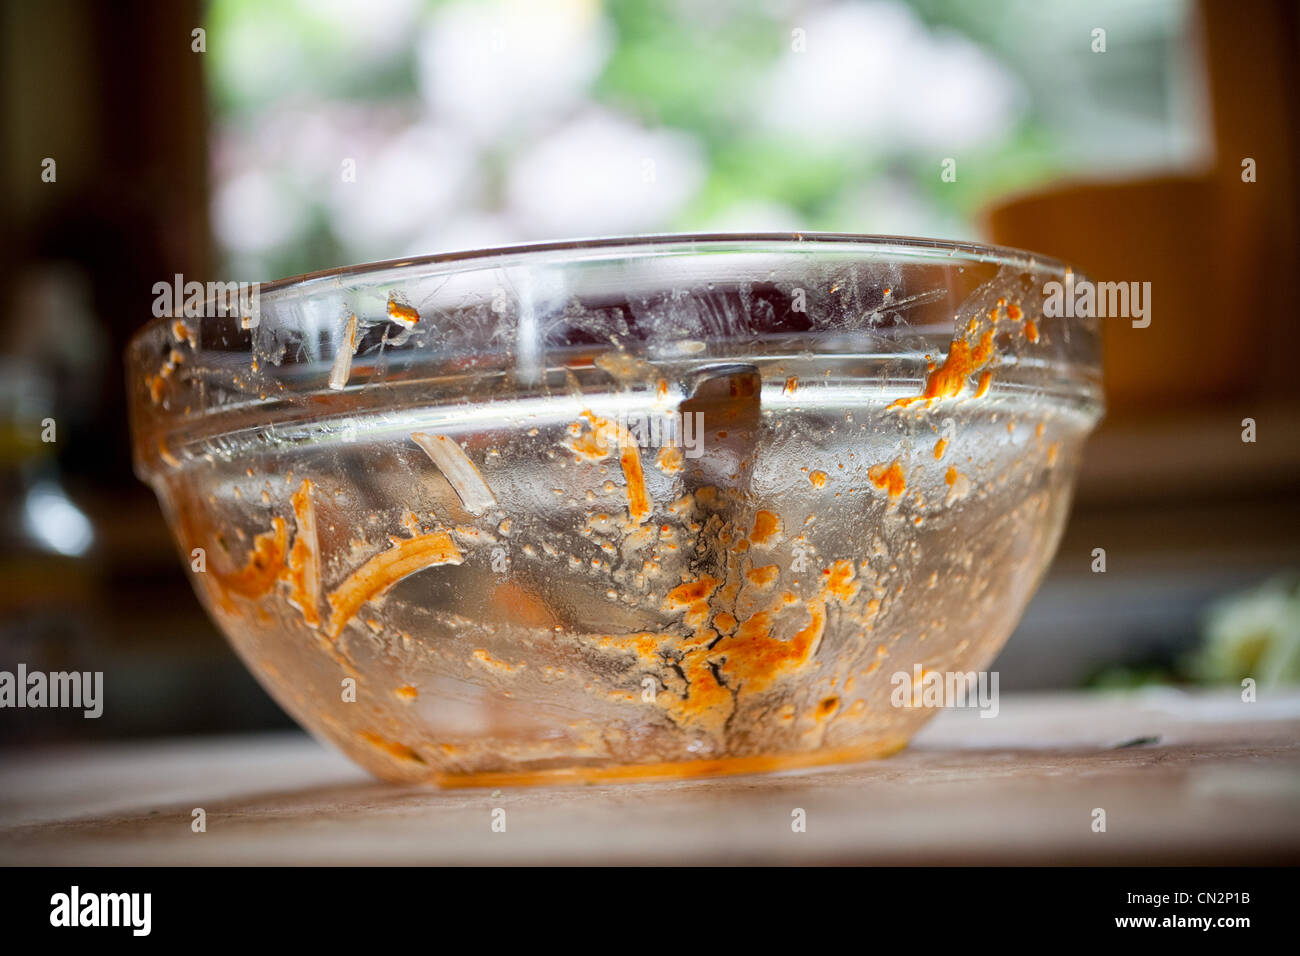 Dirty mixing bowl used for cooking - Stock Image